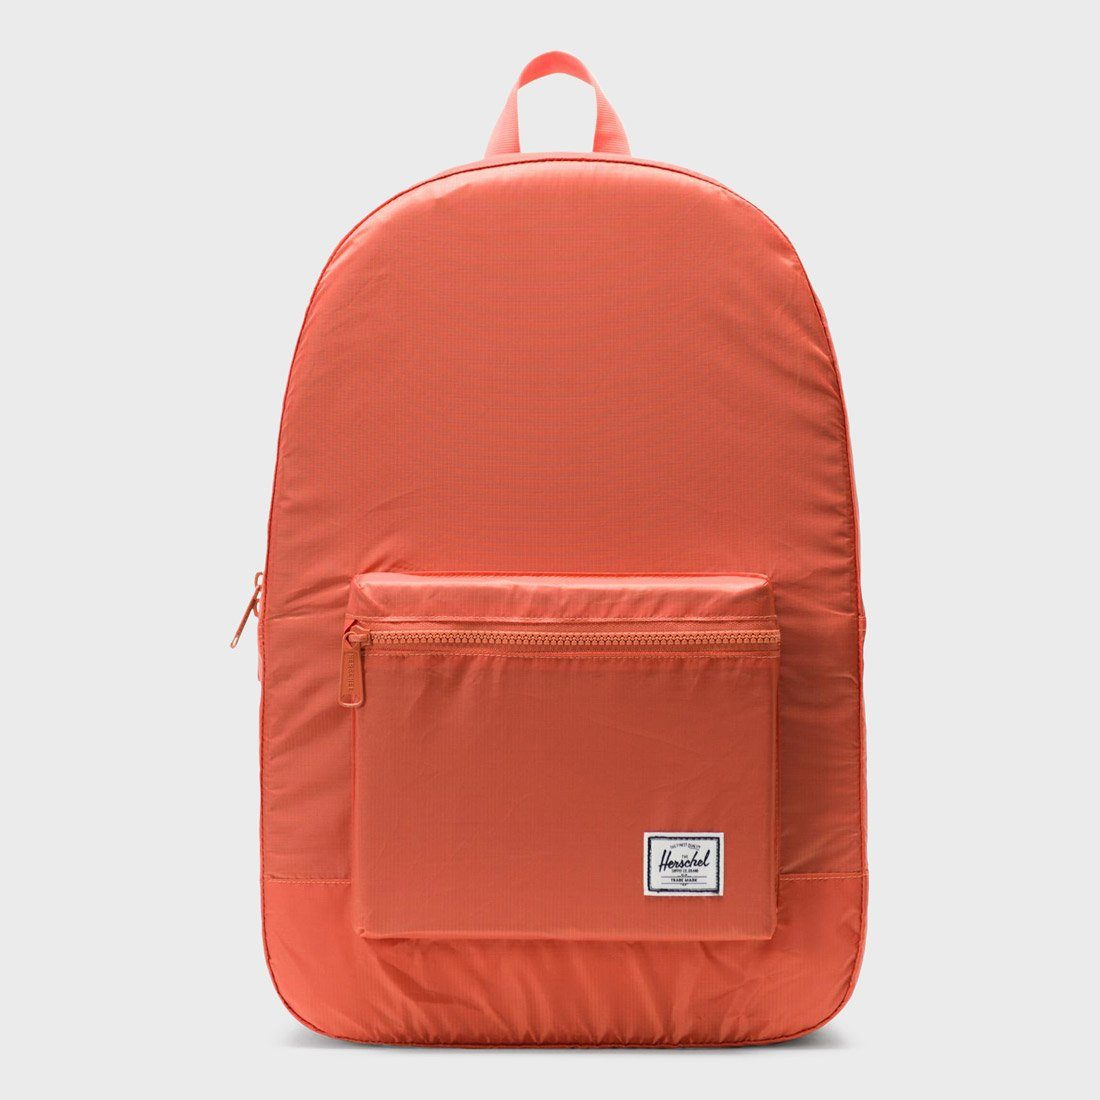 Herschel Packable Daypack Apricot Brandy